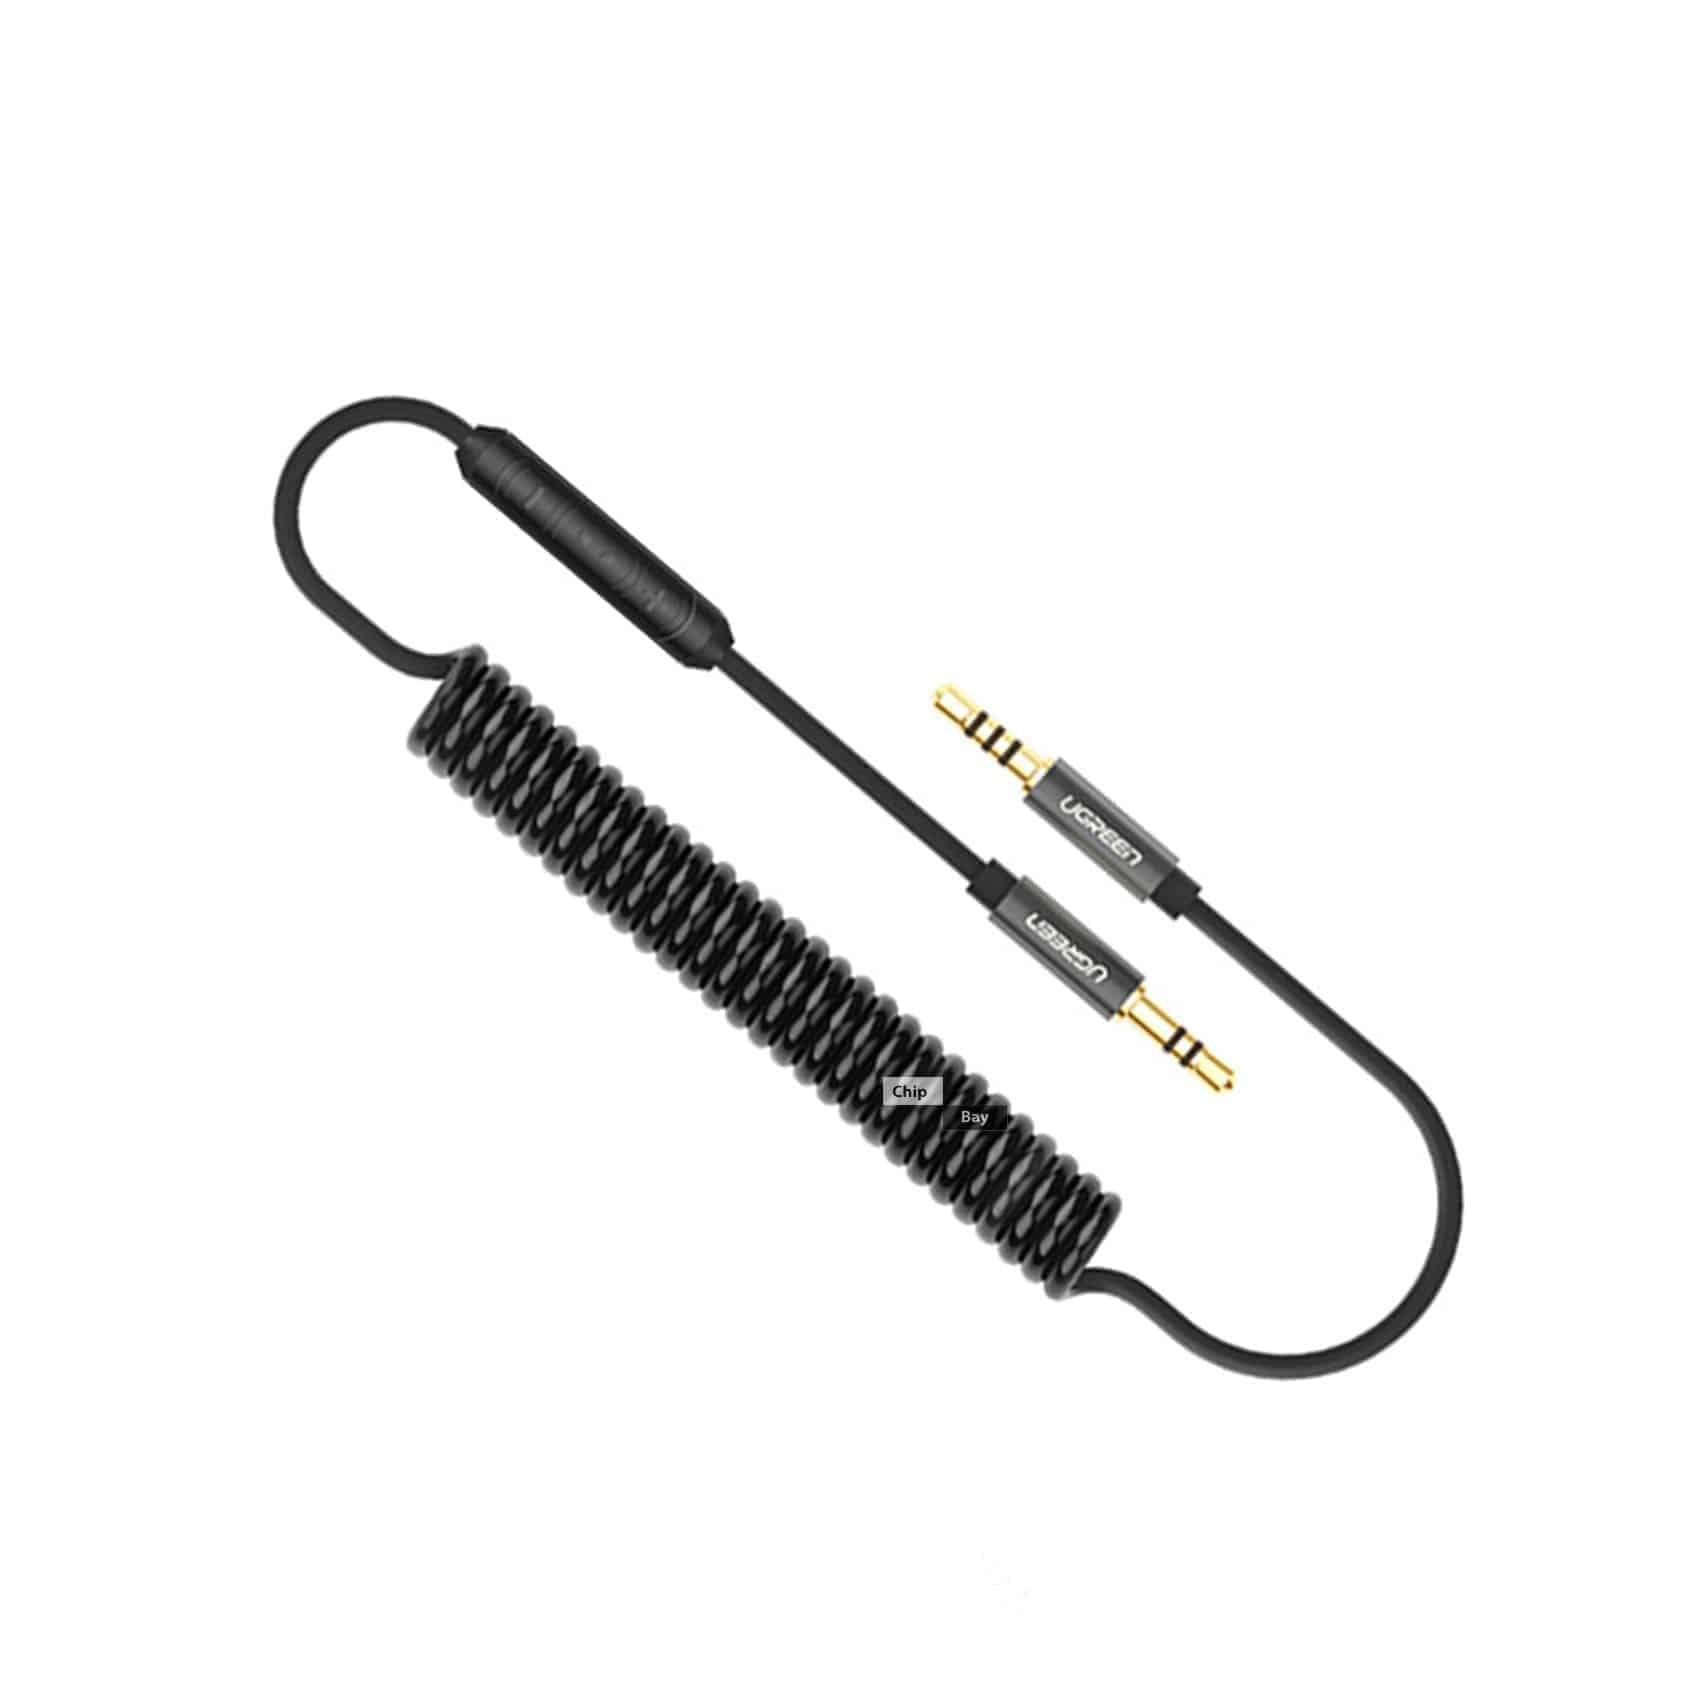 Ugreen Coiled Audio Cable Jack 3 5mm Aux Cable With